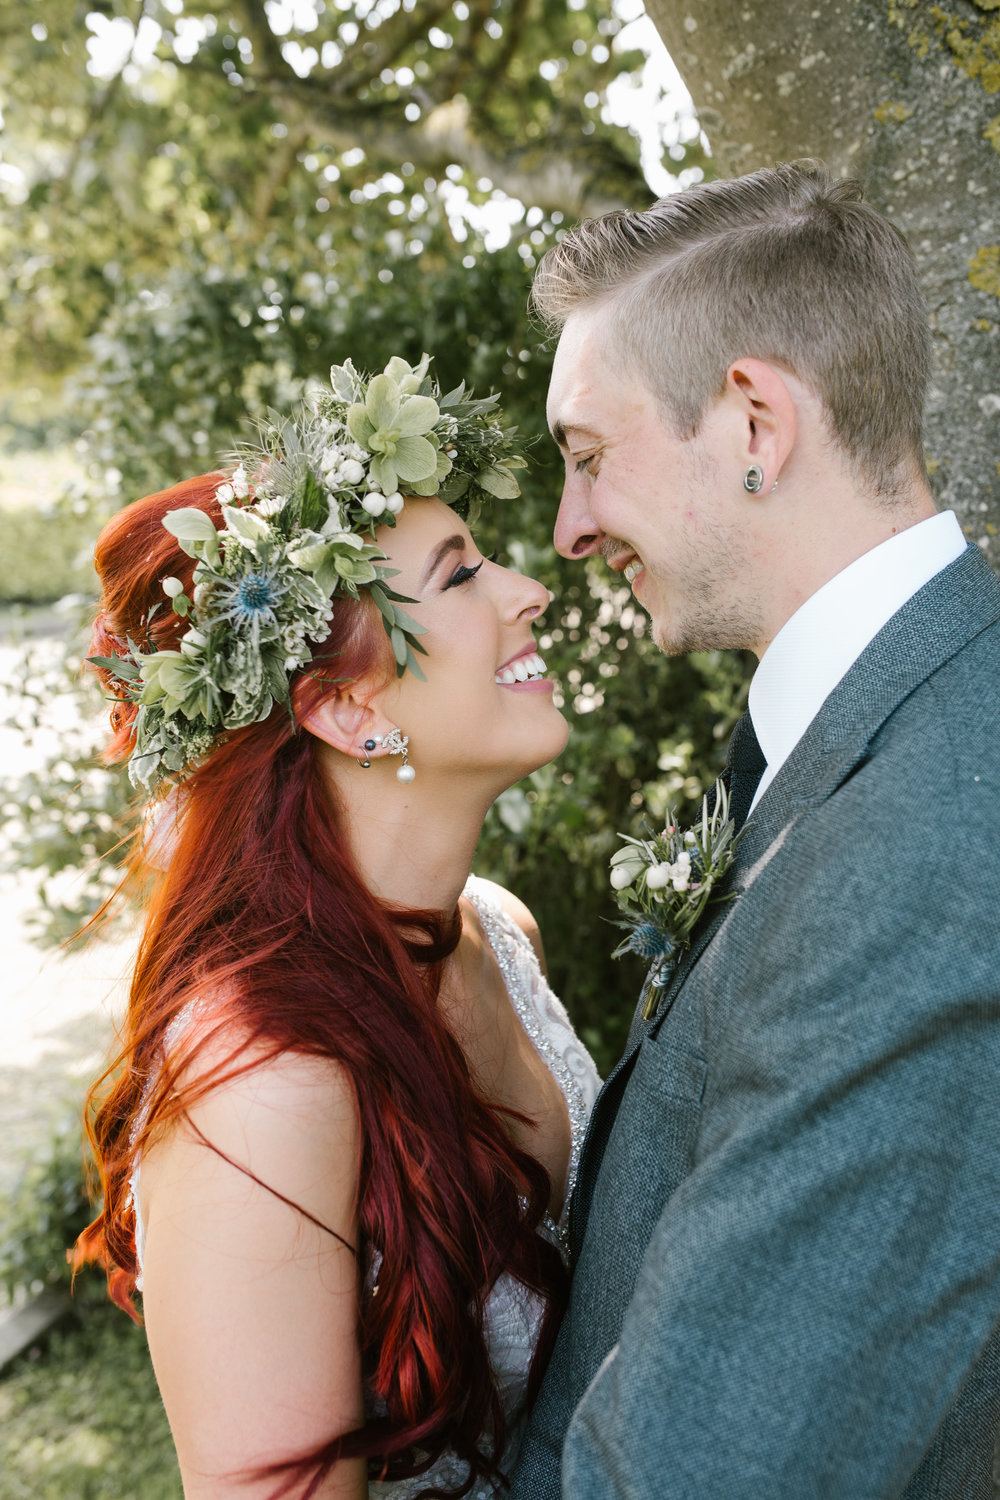 newlyweds smiling at one another, bride is wearing the most amazing flower crown